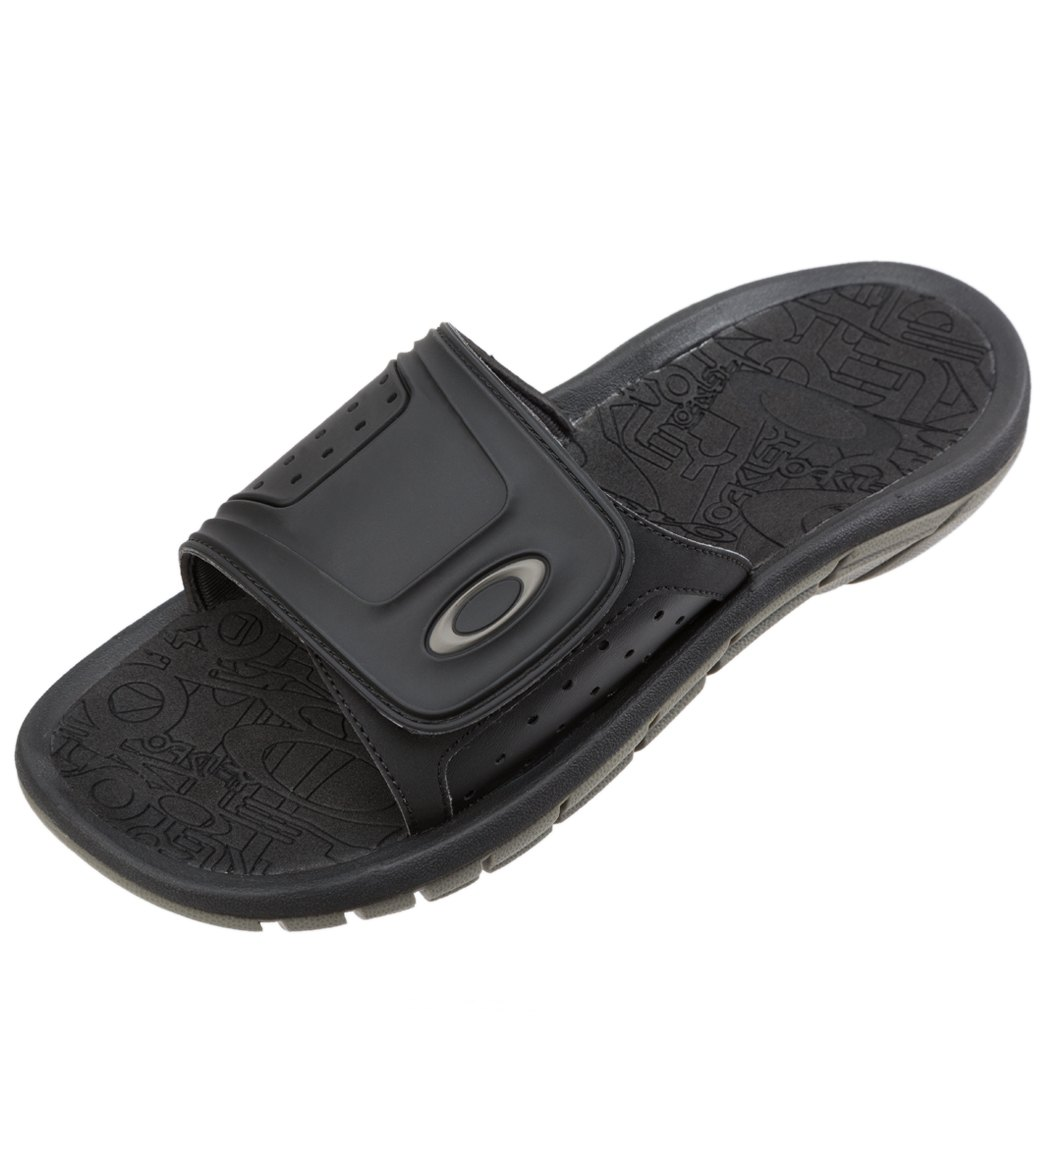 21bbd61d58c Oakley Men s Supercoil Slide Sandals at SwimOutlet.com - Free ...